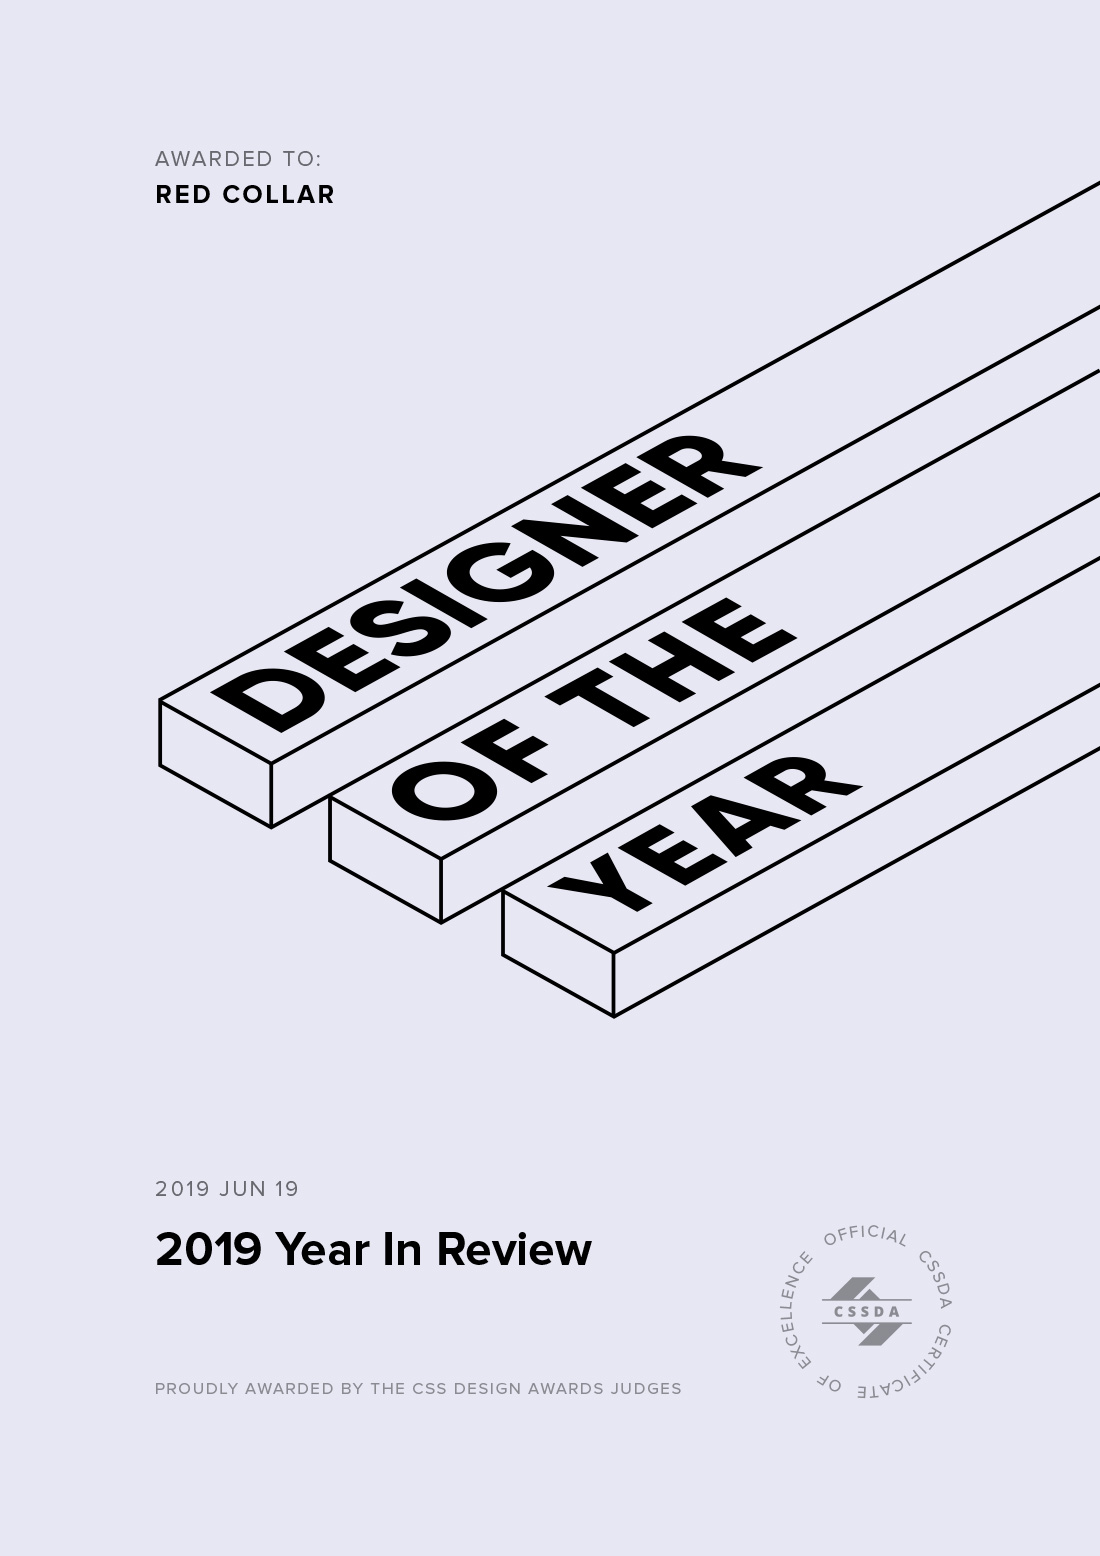 Designer of the Year Award Certificate